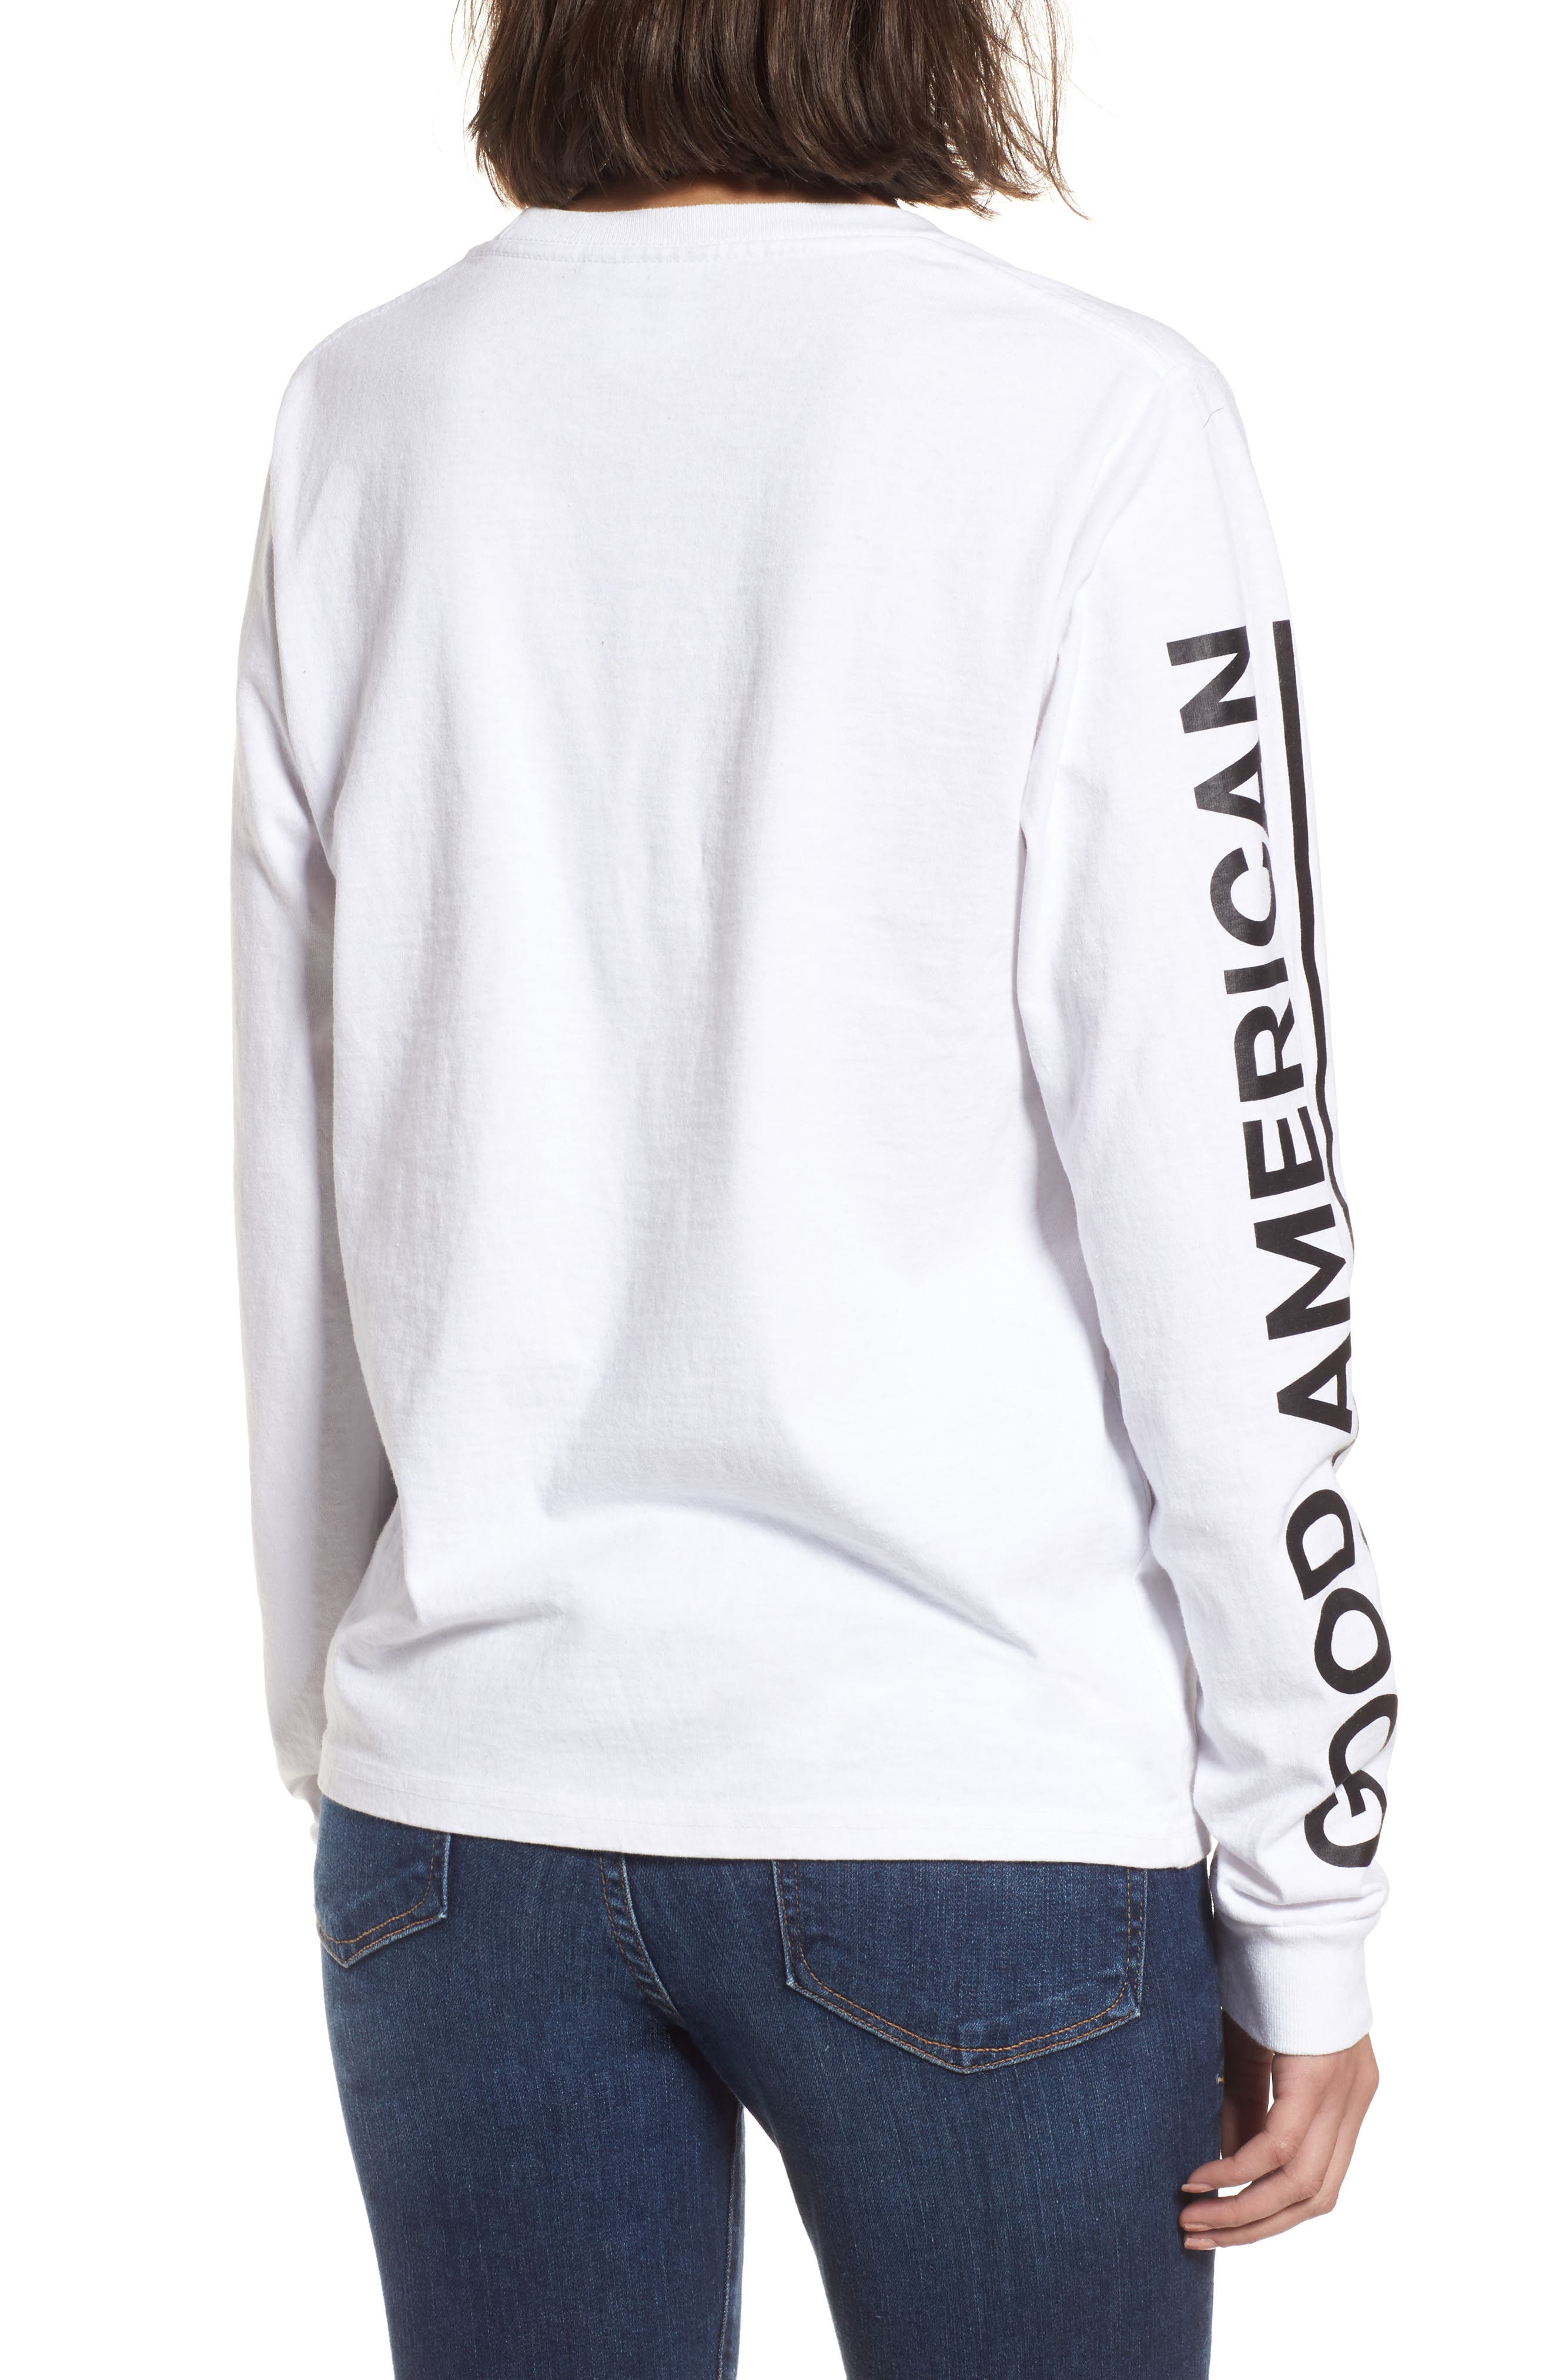 Goodies Long Sleeve Graphic Tee,                             Alternate thumbnail 2, color,                             120